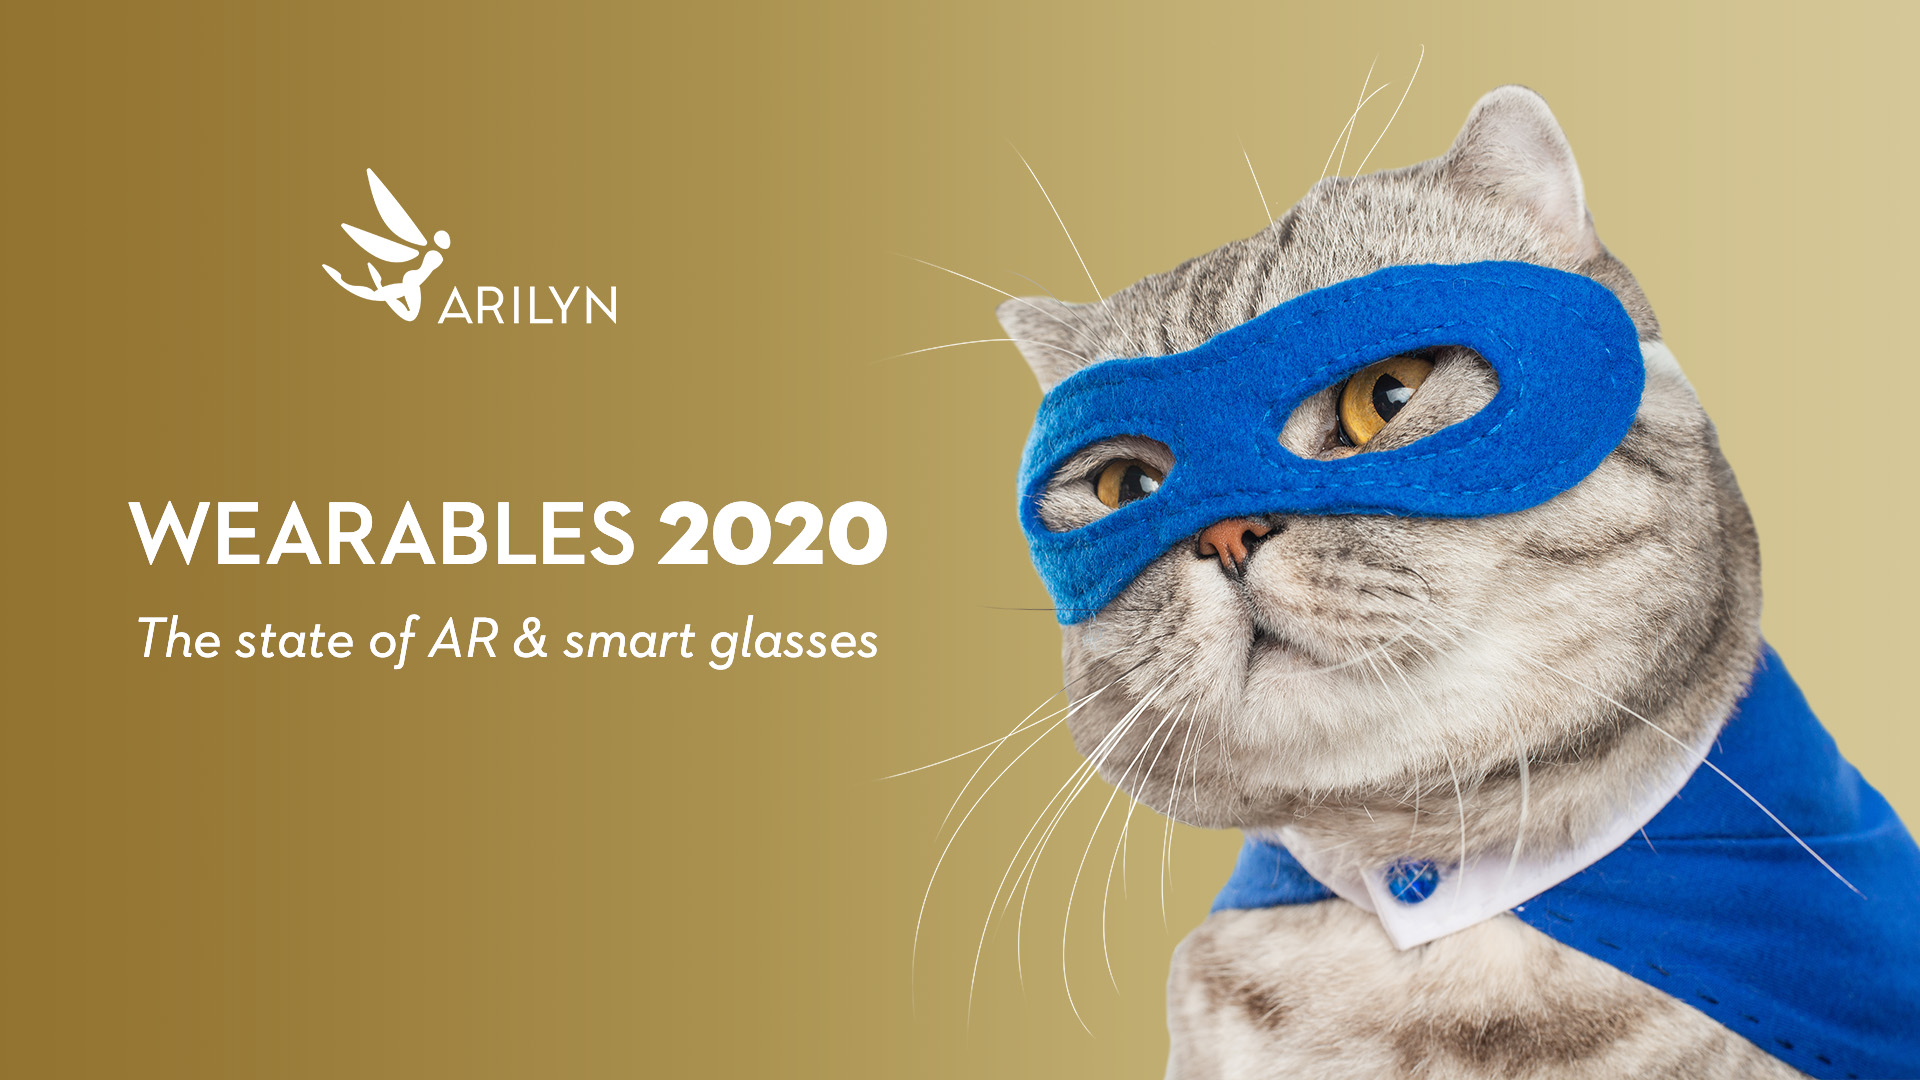 State of AR glasses, smart glasses & wearables in 2020